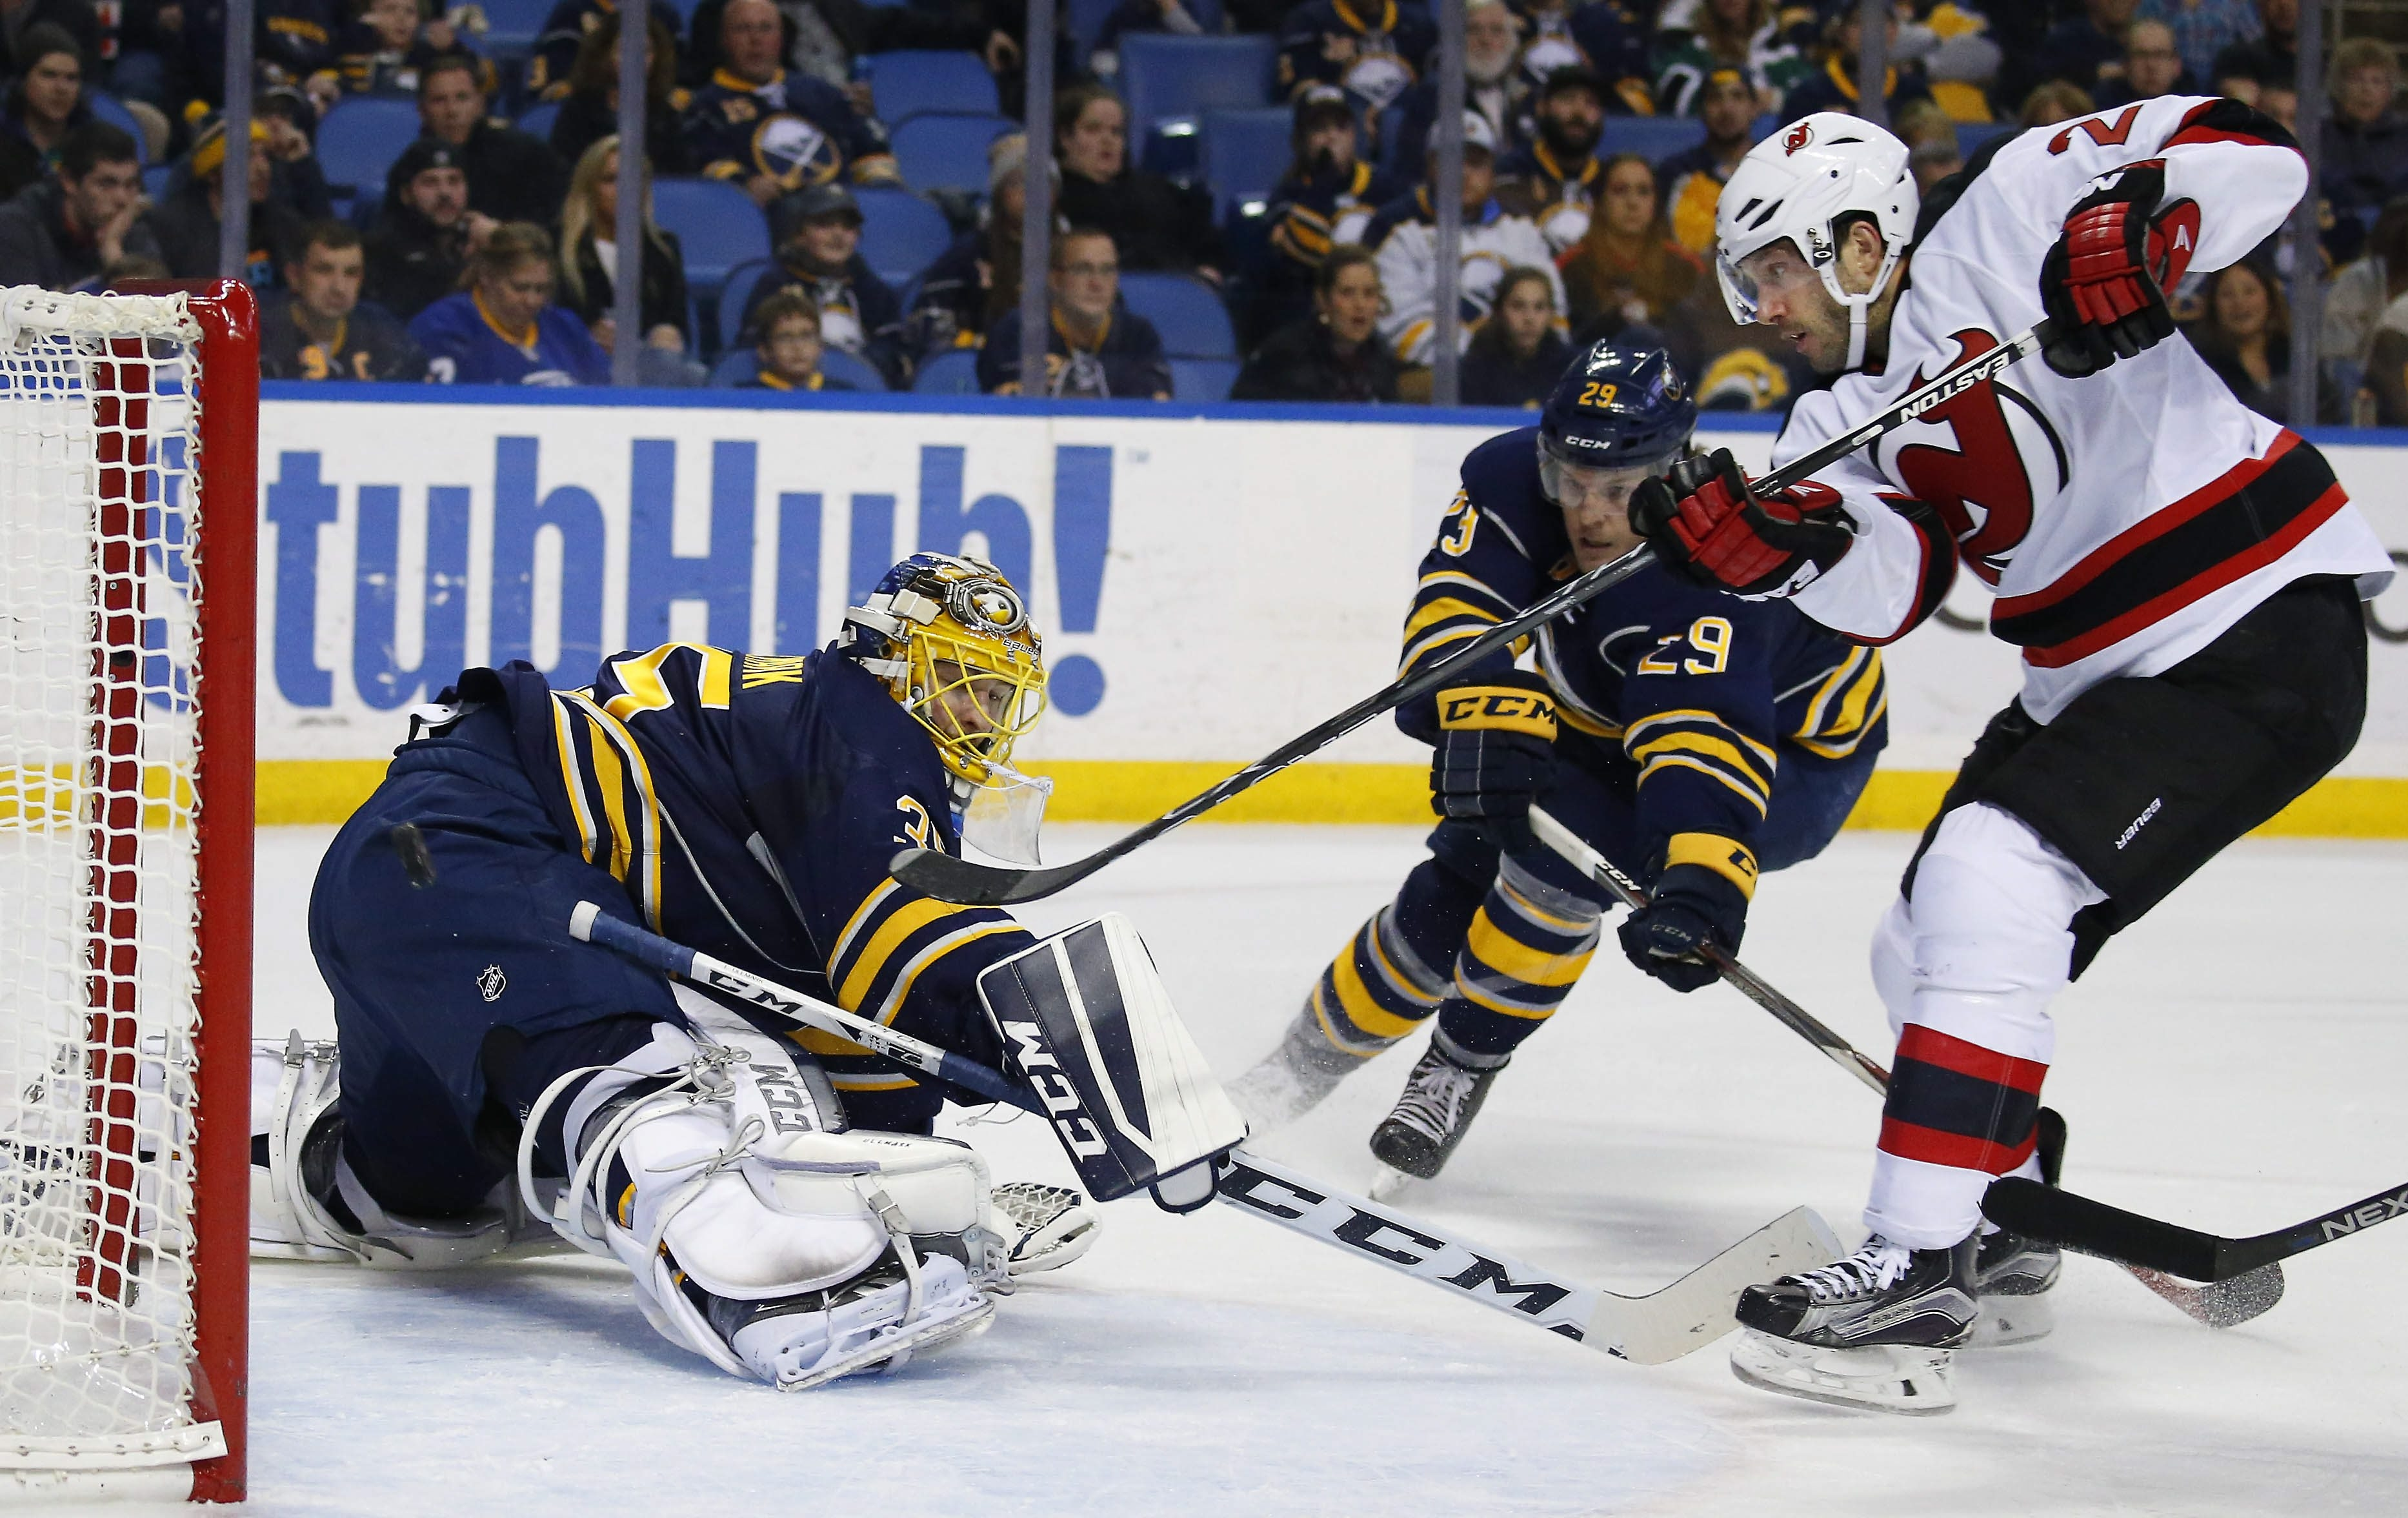 Sabres goalie Linus Ullmark can't stop the Devils' Lee Stempniak on the game's first goal in the second period.